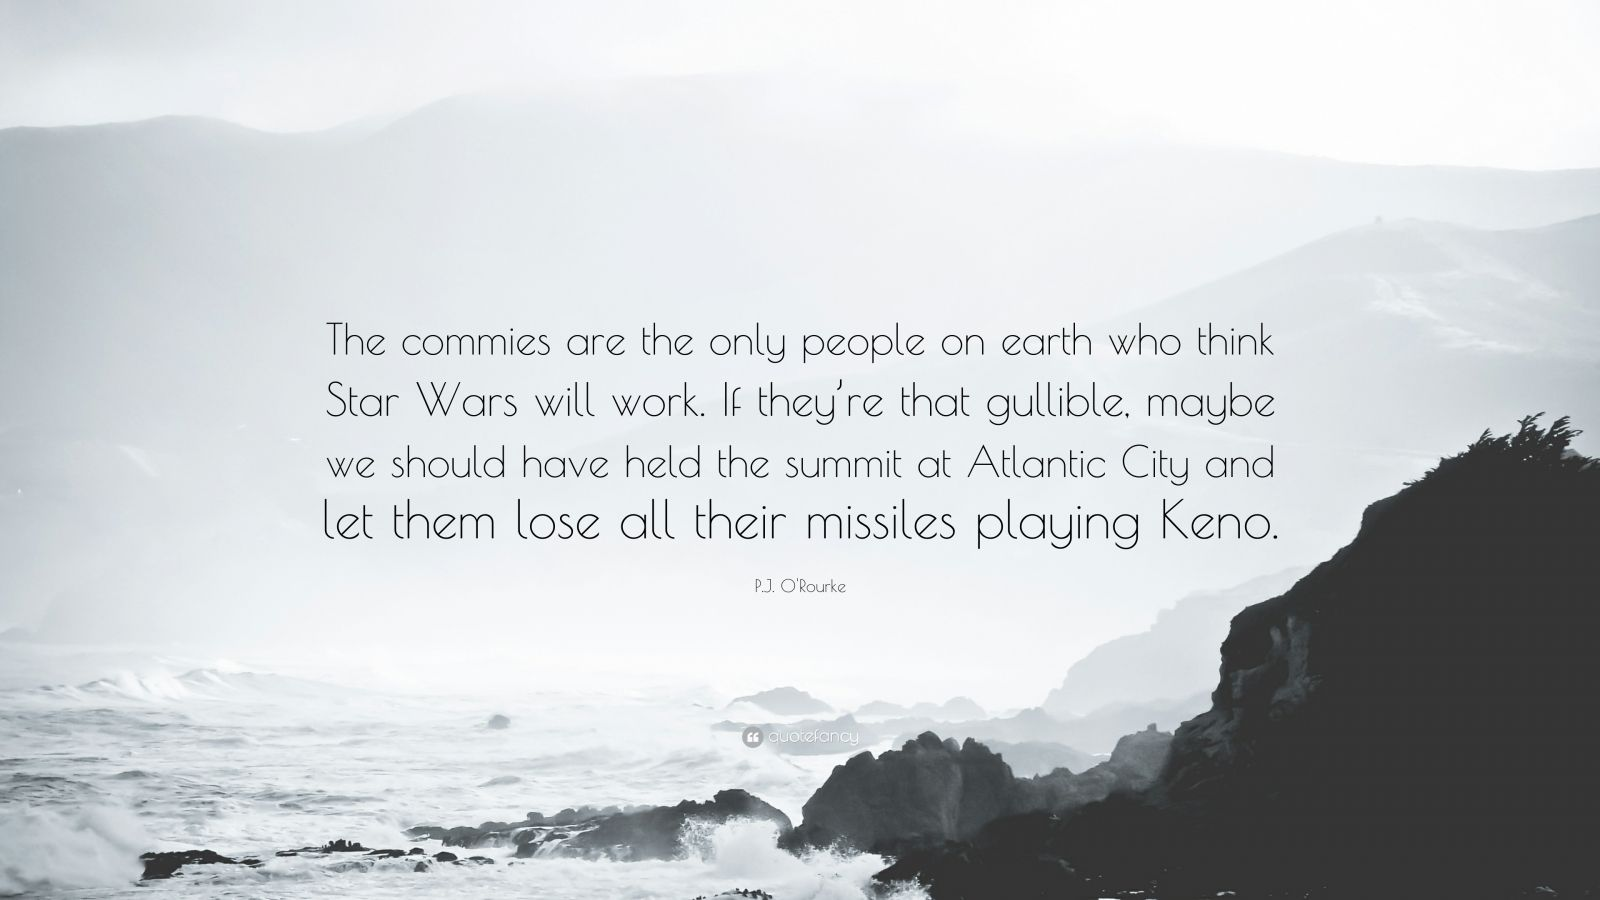 "P.J. O'Rourke Quote: ""The commies are the only people on earth who think Star Wars will work. If they're that gullible, maybe we should have held the summit at Atlantic City and let them lose all their missiles playing Keno."""